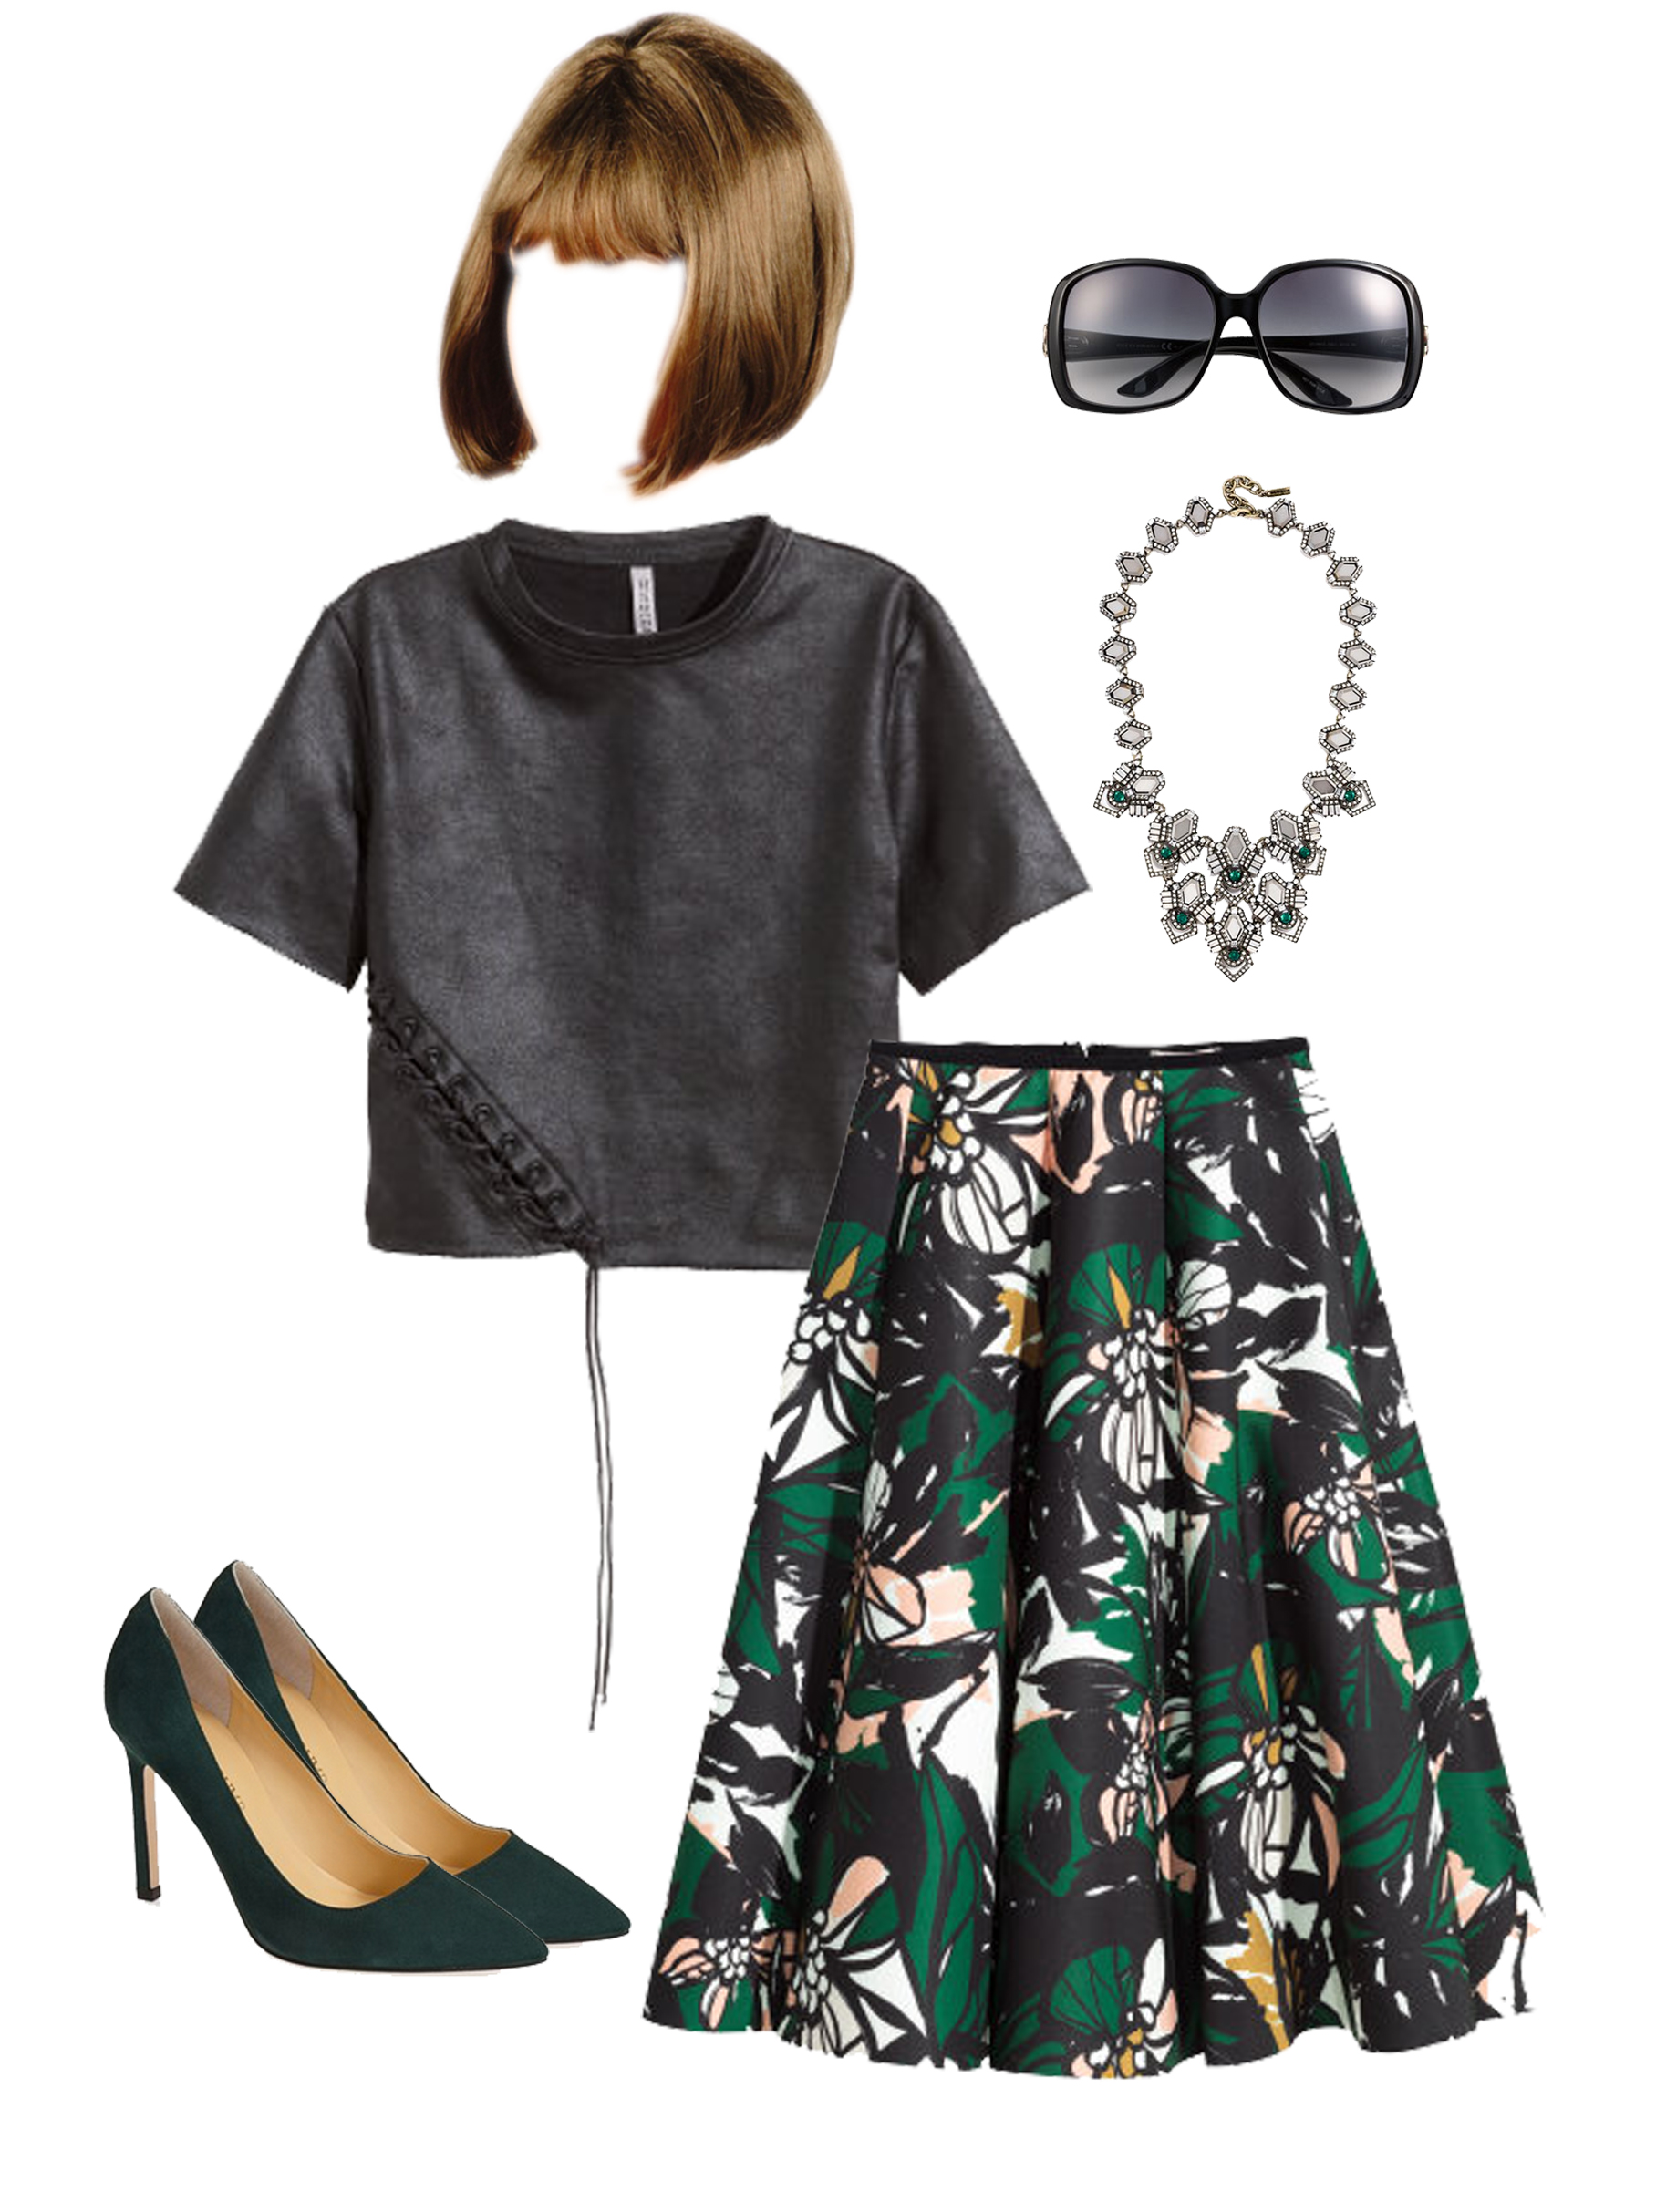 Wig from Pricefalls, Sunglasses from Gucci, Necklace from BaubleBar, Black Top from H&M, Floral Skirt from H&M and Heels from Ivanka Trump